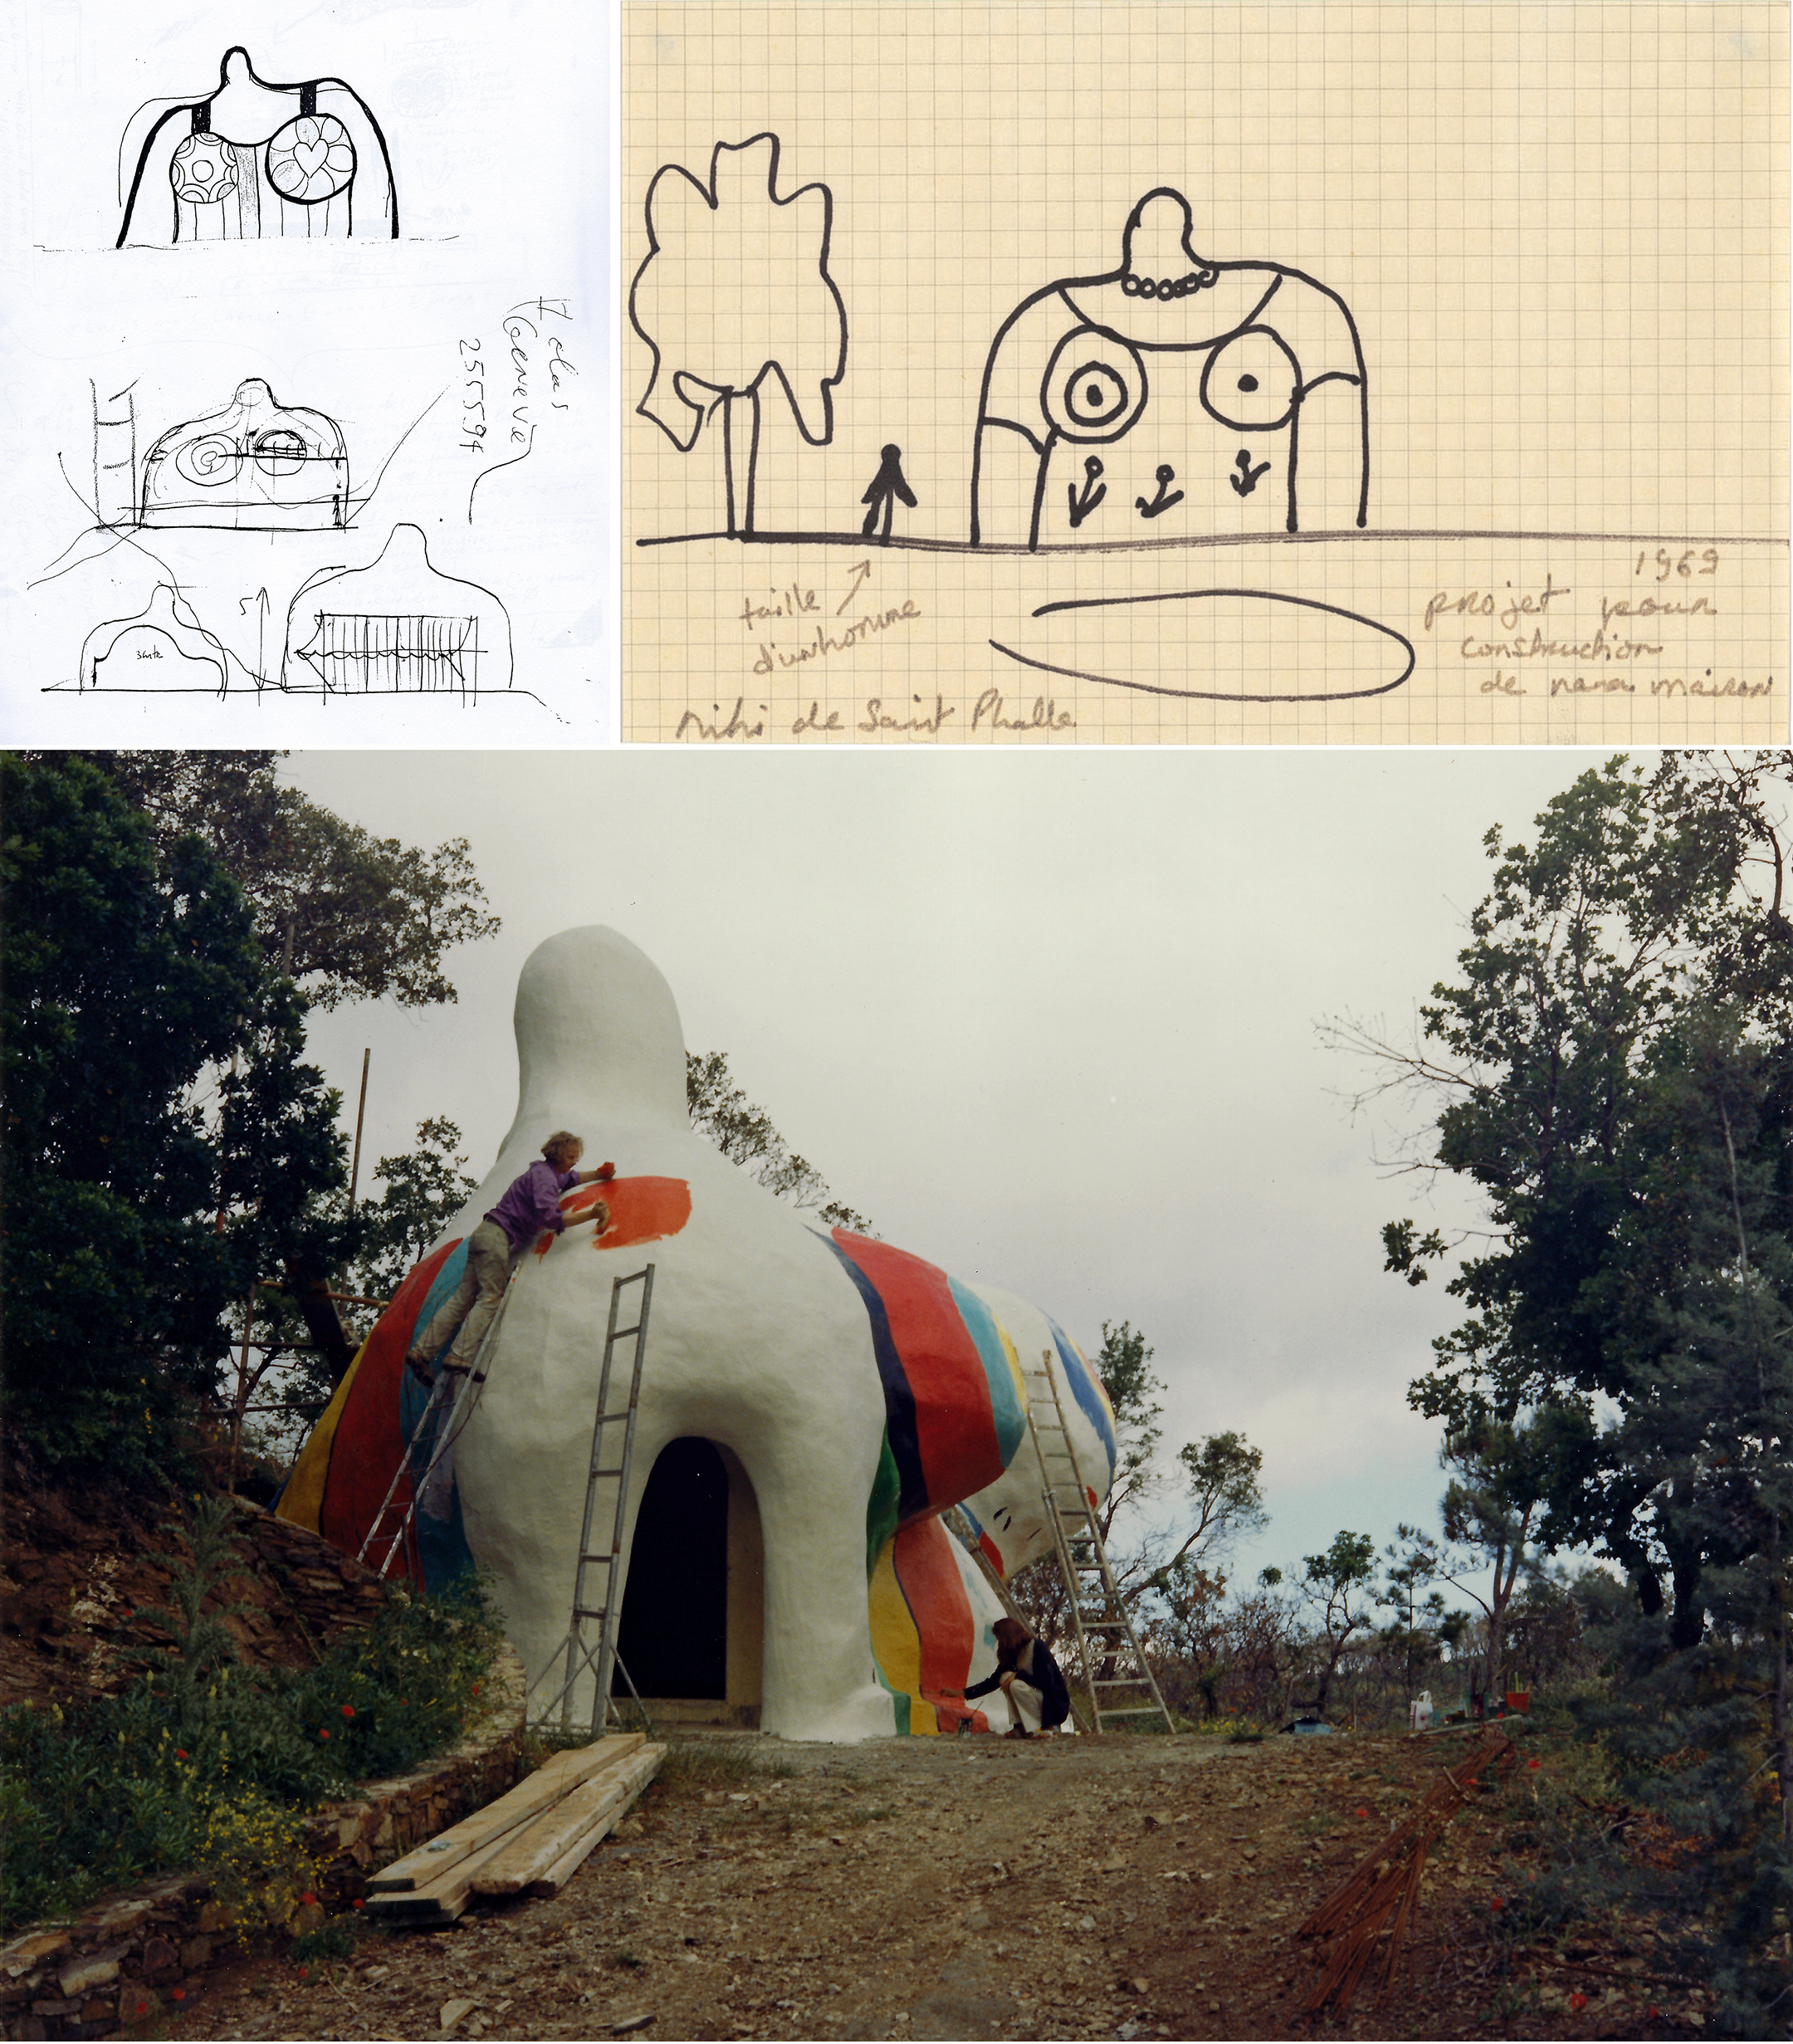 """A pencil drawing by Niki de Saint Phalle and Jean Tinguely of the outside of Big Clarice in frontal view, as well as primitive structural lines inside and with a canopy. Next a black marker drawing on grid paper showing Big Clarice next to a figure and a tree. The notes in Niki de Saint Phalle's handwriting say: """"taille d'un home"""" and """"1969 project pour construction de nano maison"""" Bottom pictures shows Rainer von Hessen on a ladder painting orange patches on Big Clarice. Niki de Saint Phalle paints the front kneeling down."""